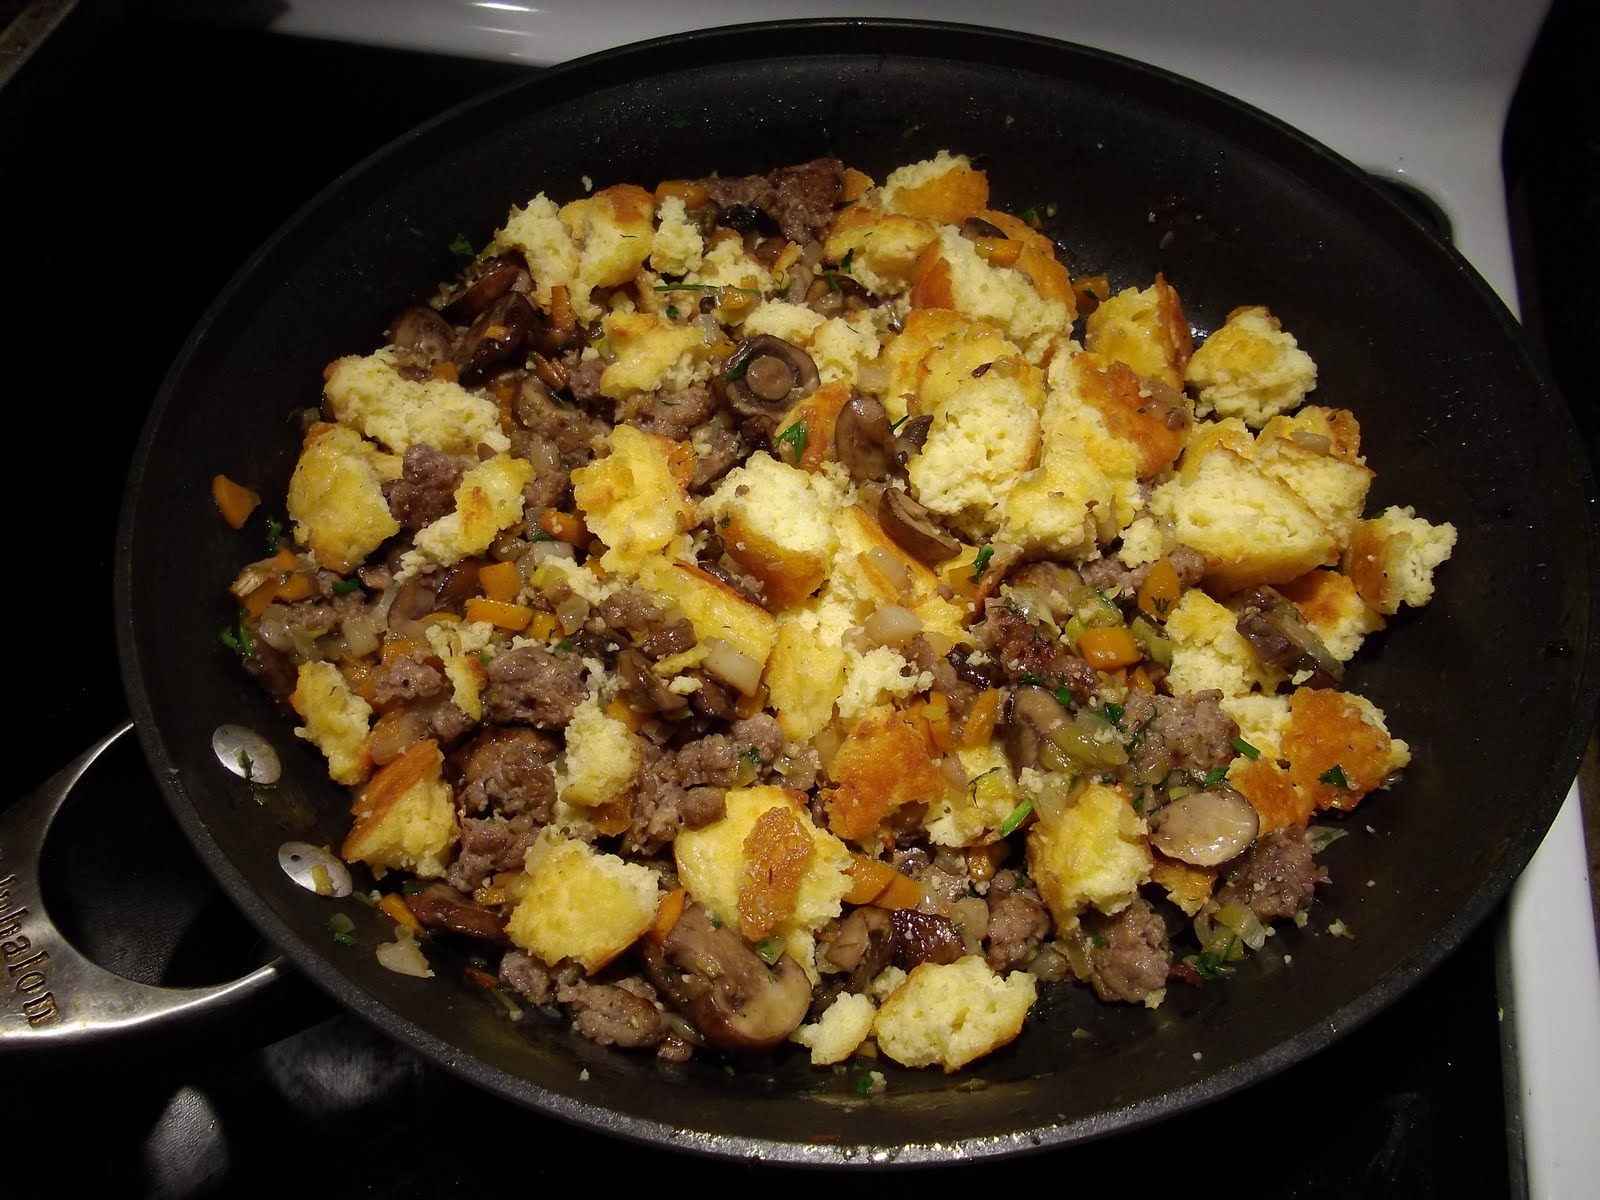 Get Fit Katie's Low Carb Blog: Recipe: LCHF Sausage and Bread Stuffing